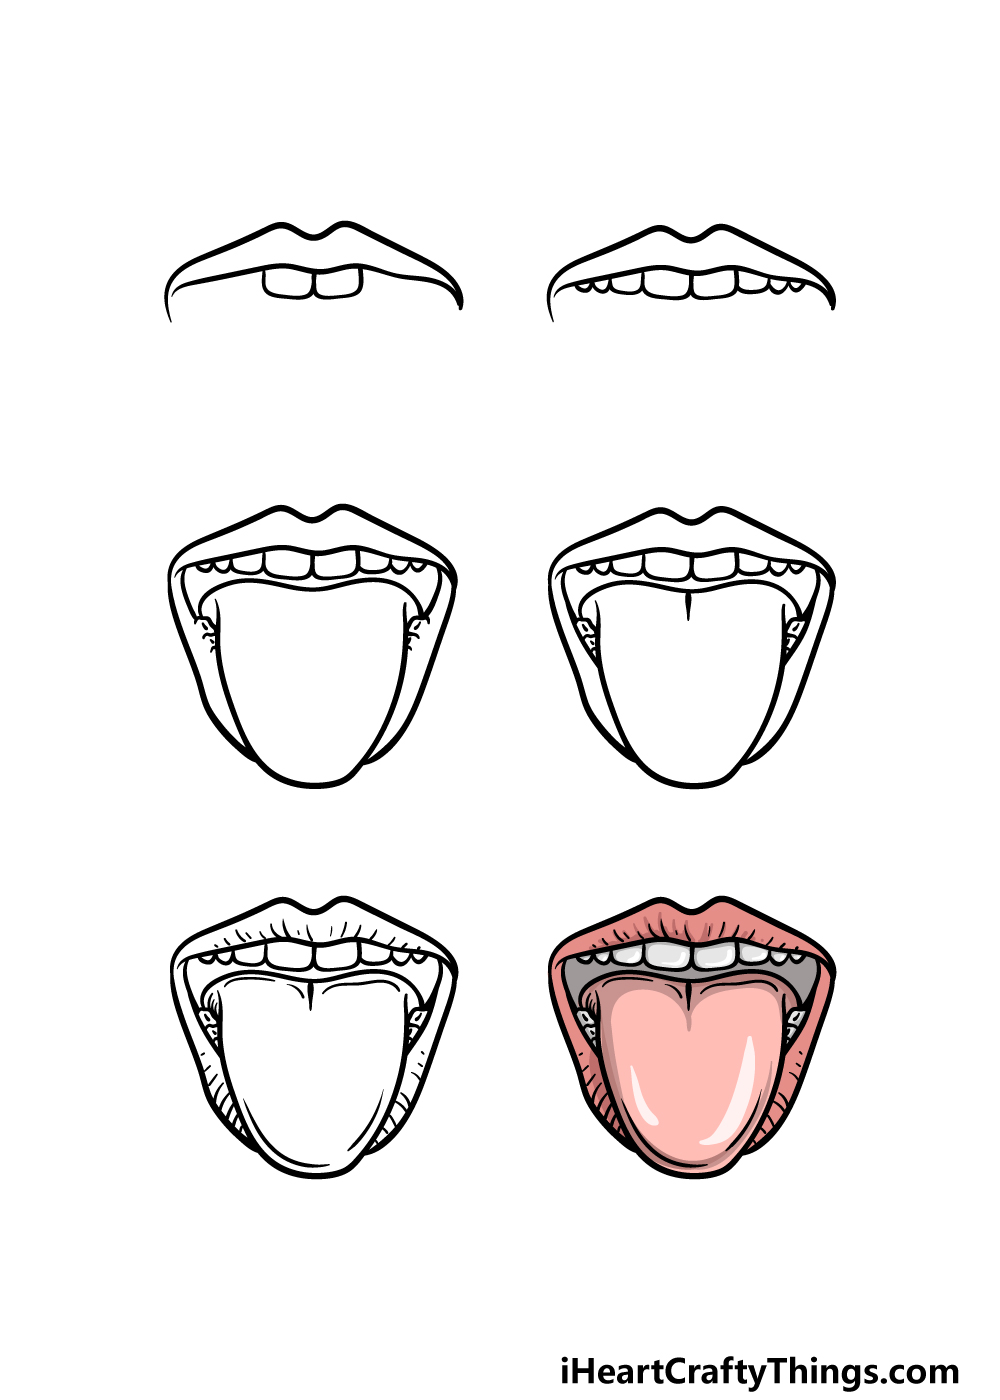 how to draw a tongue in 6 steps